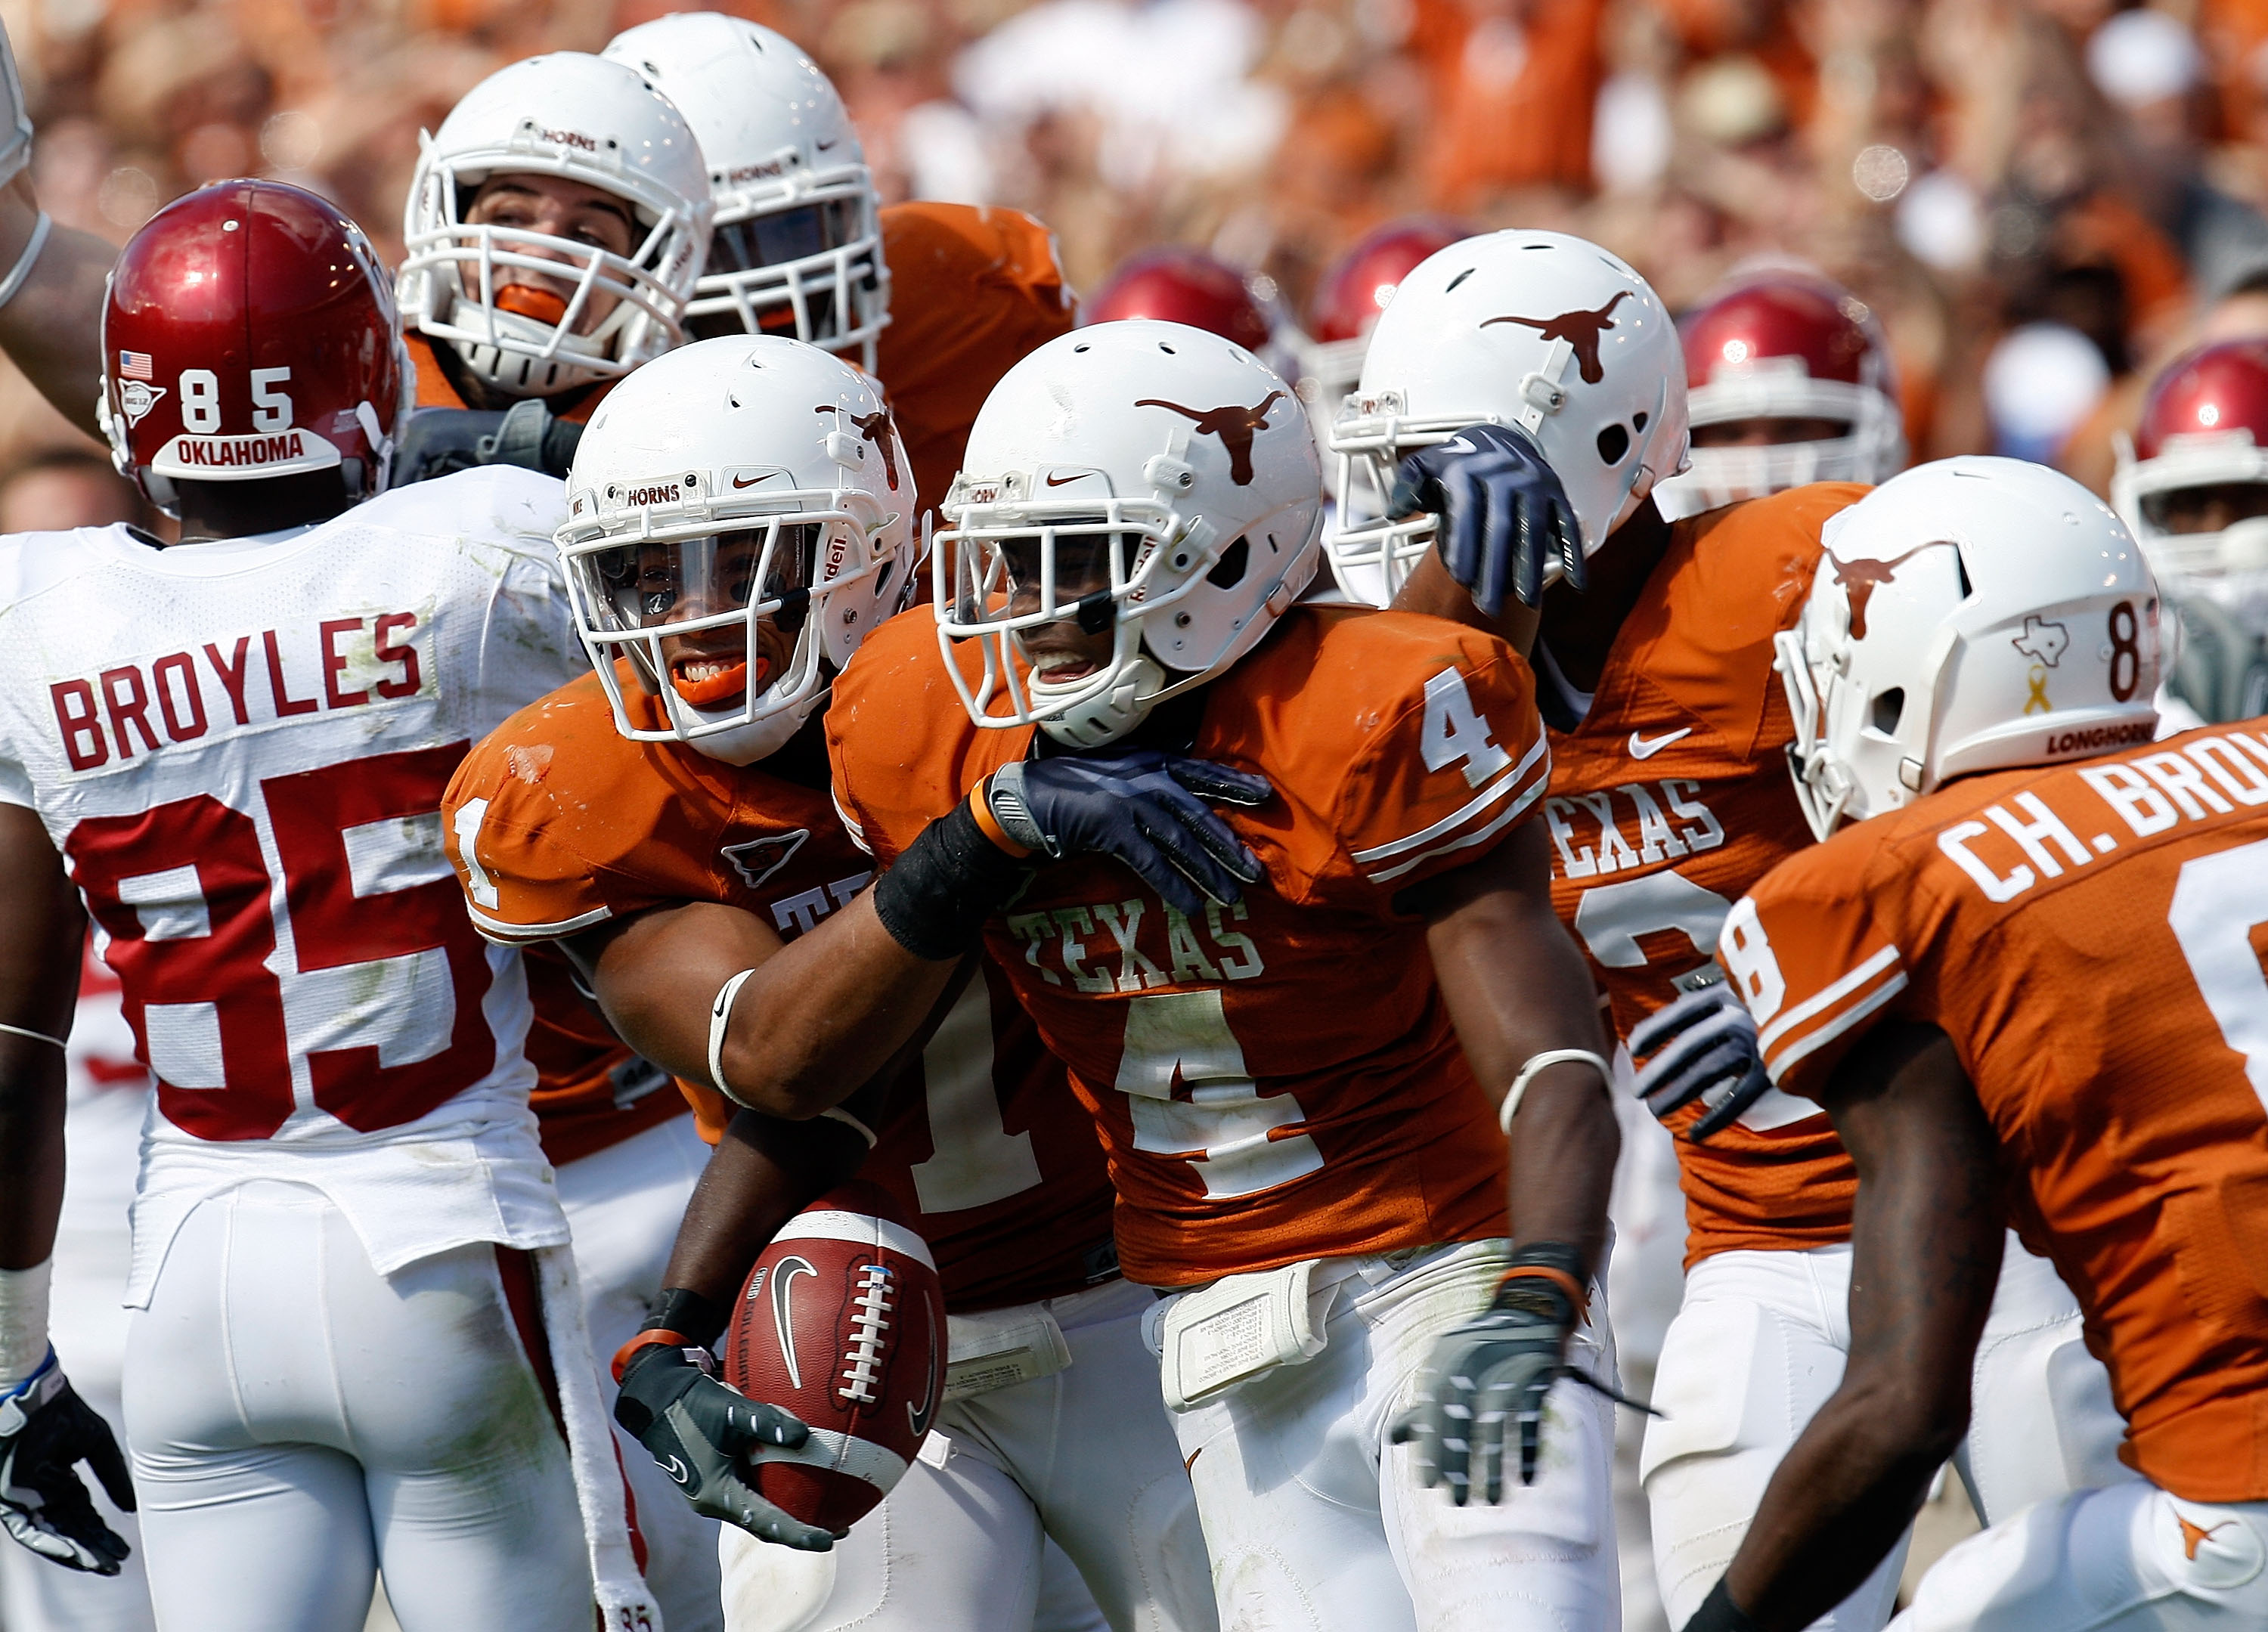 DALLAS - OCTOBER 17:  Defensive back Aaron Williams #4 of the Texas Longhorns celebrates a pass interception with Deon Beasley against the Oklahoma Sooners at Cotton Bowl on October 17, 2009 in Dallas, Texas.  (Photo by Ronald Martinez/Getty Images)